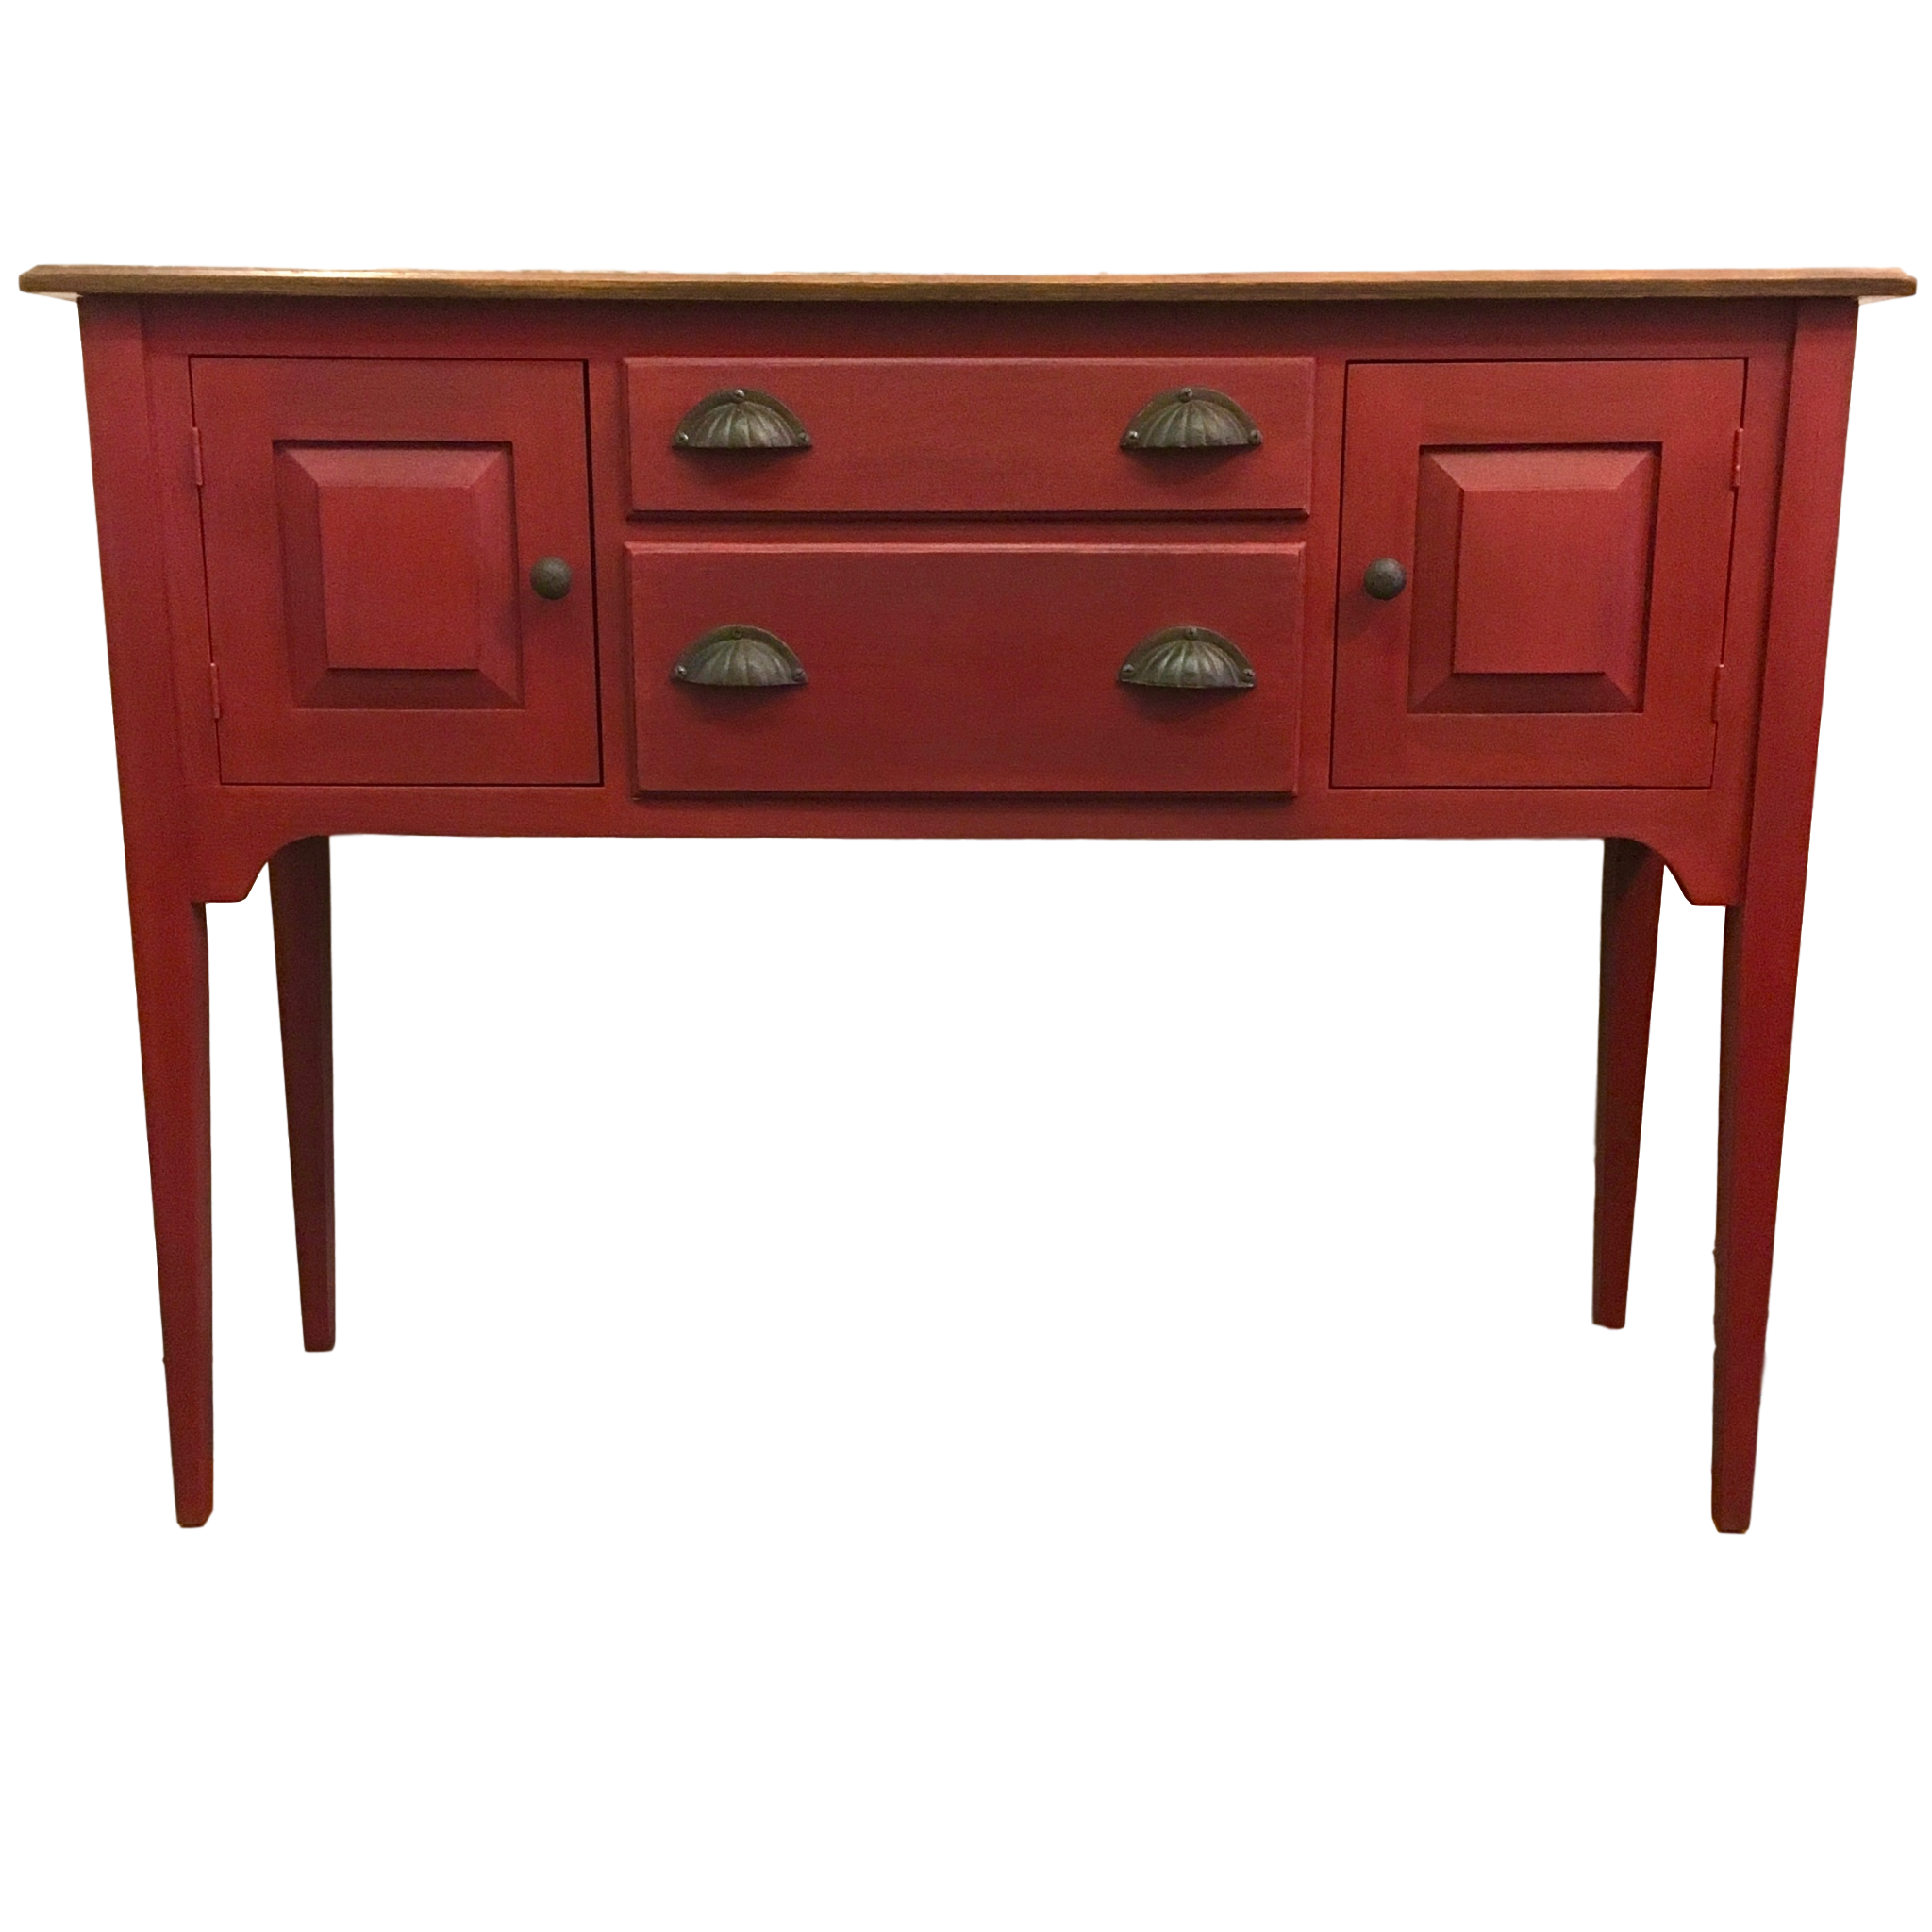 The Red Hunt Board Painted Sideboard Furniture Antique Sideboard Buffet